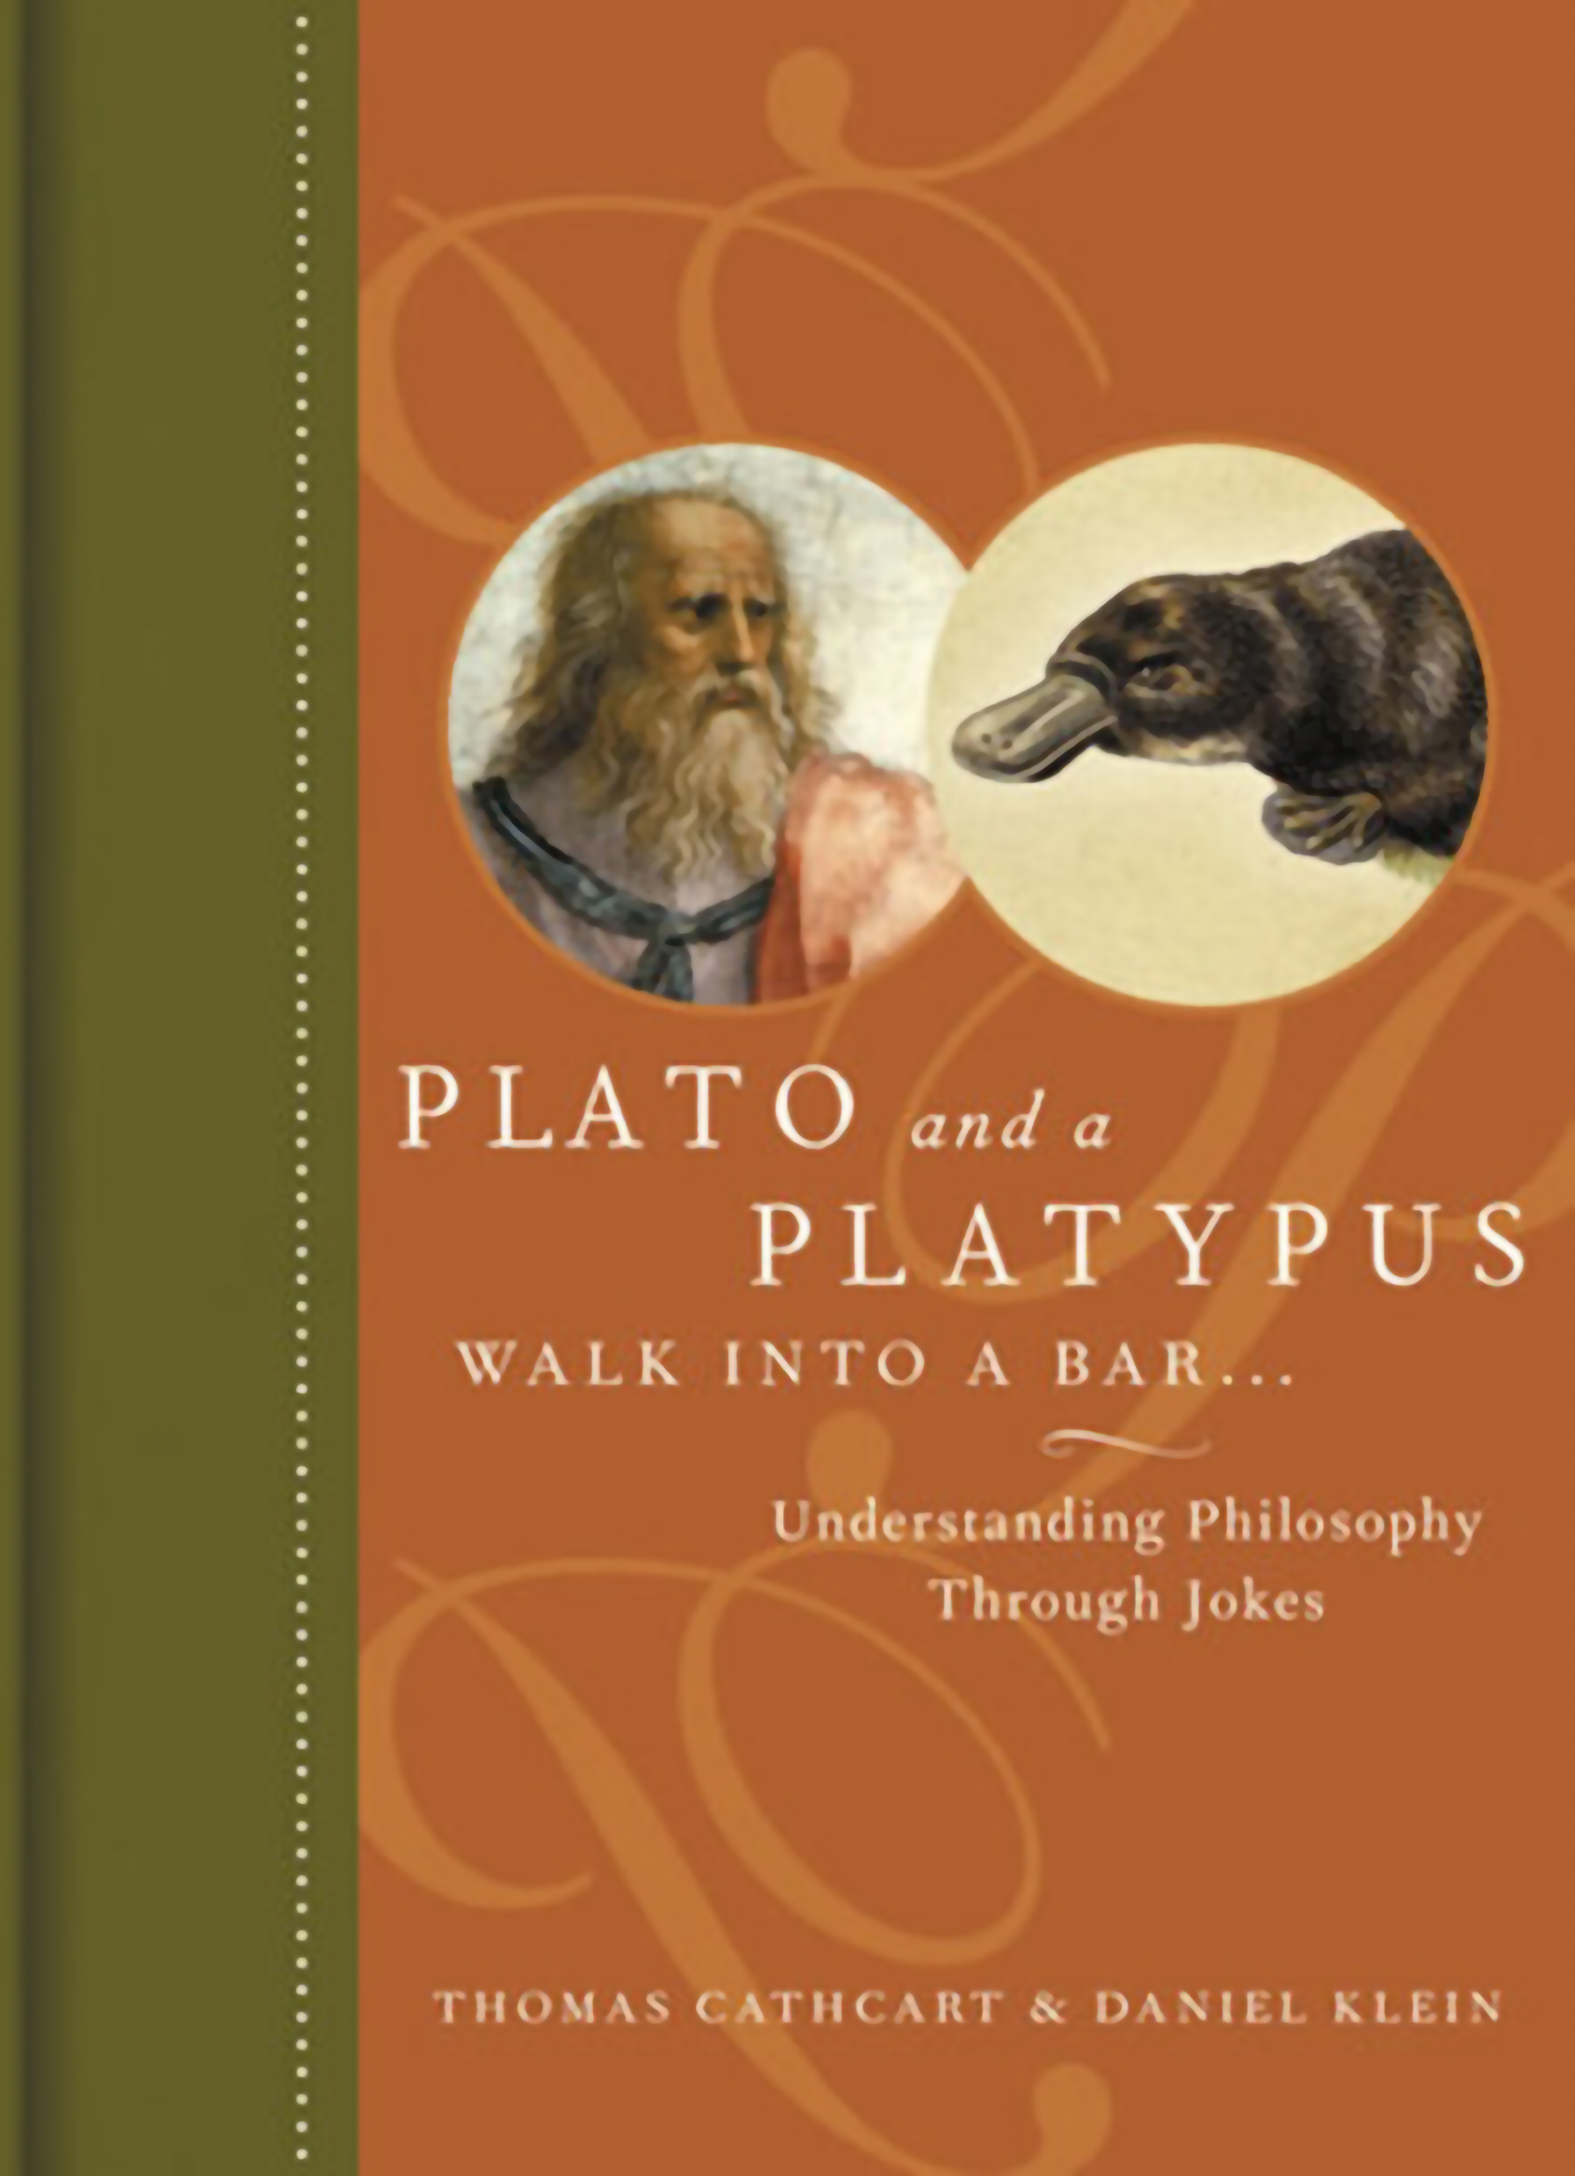 Plato and a Platypus Walk Into a Bar. . . Understanding Philosophy Through Jokes